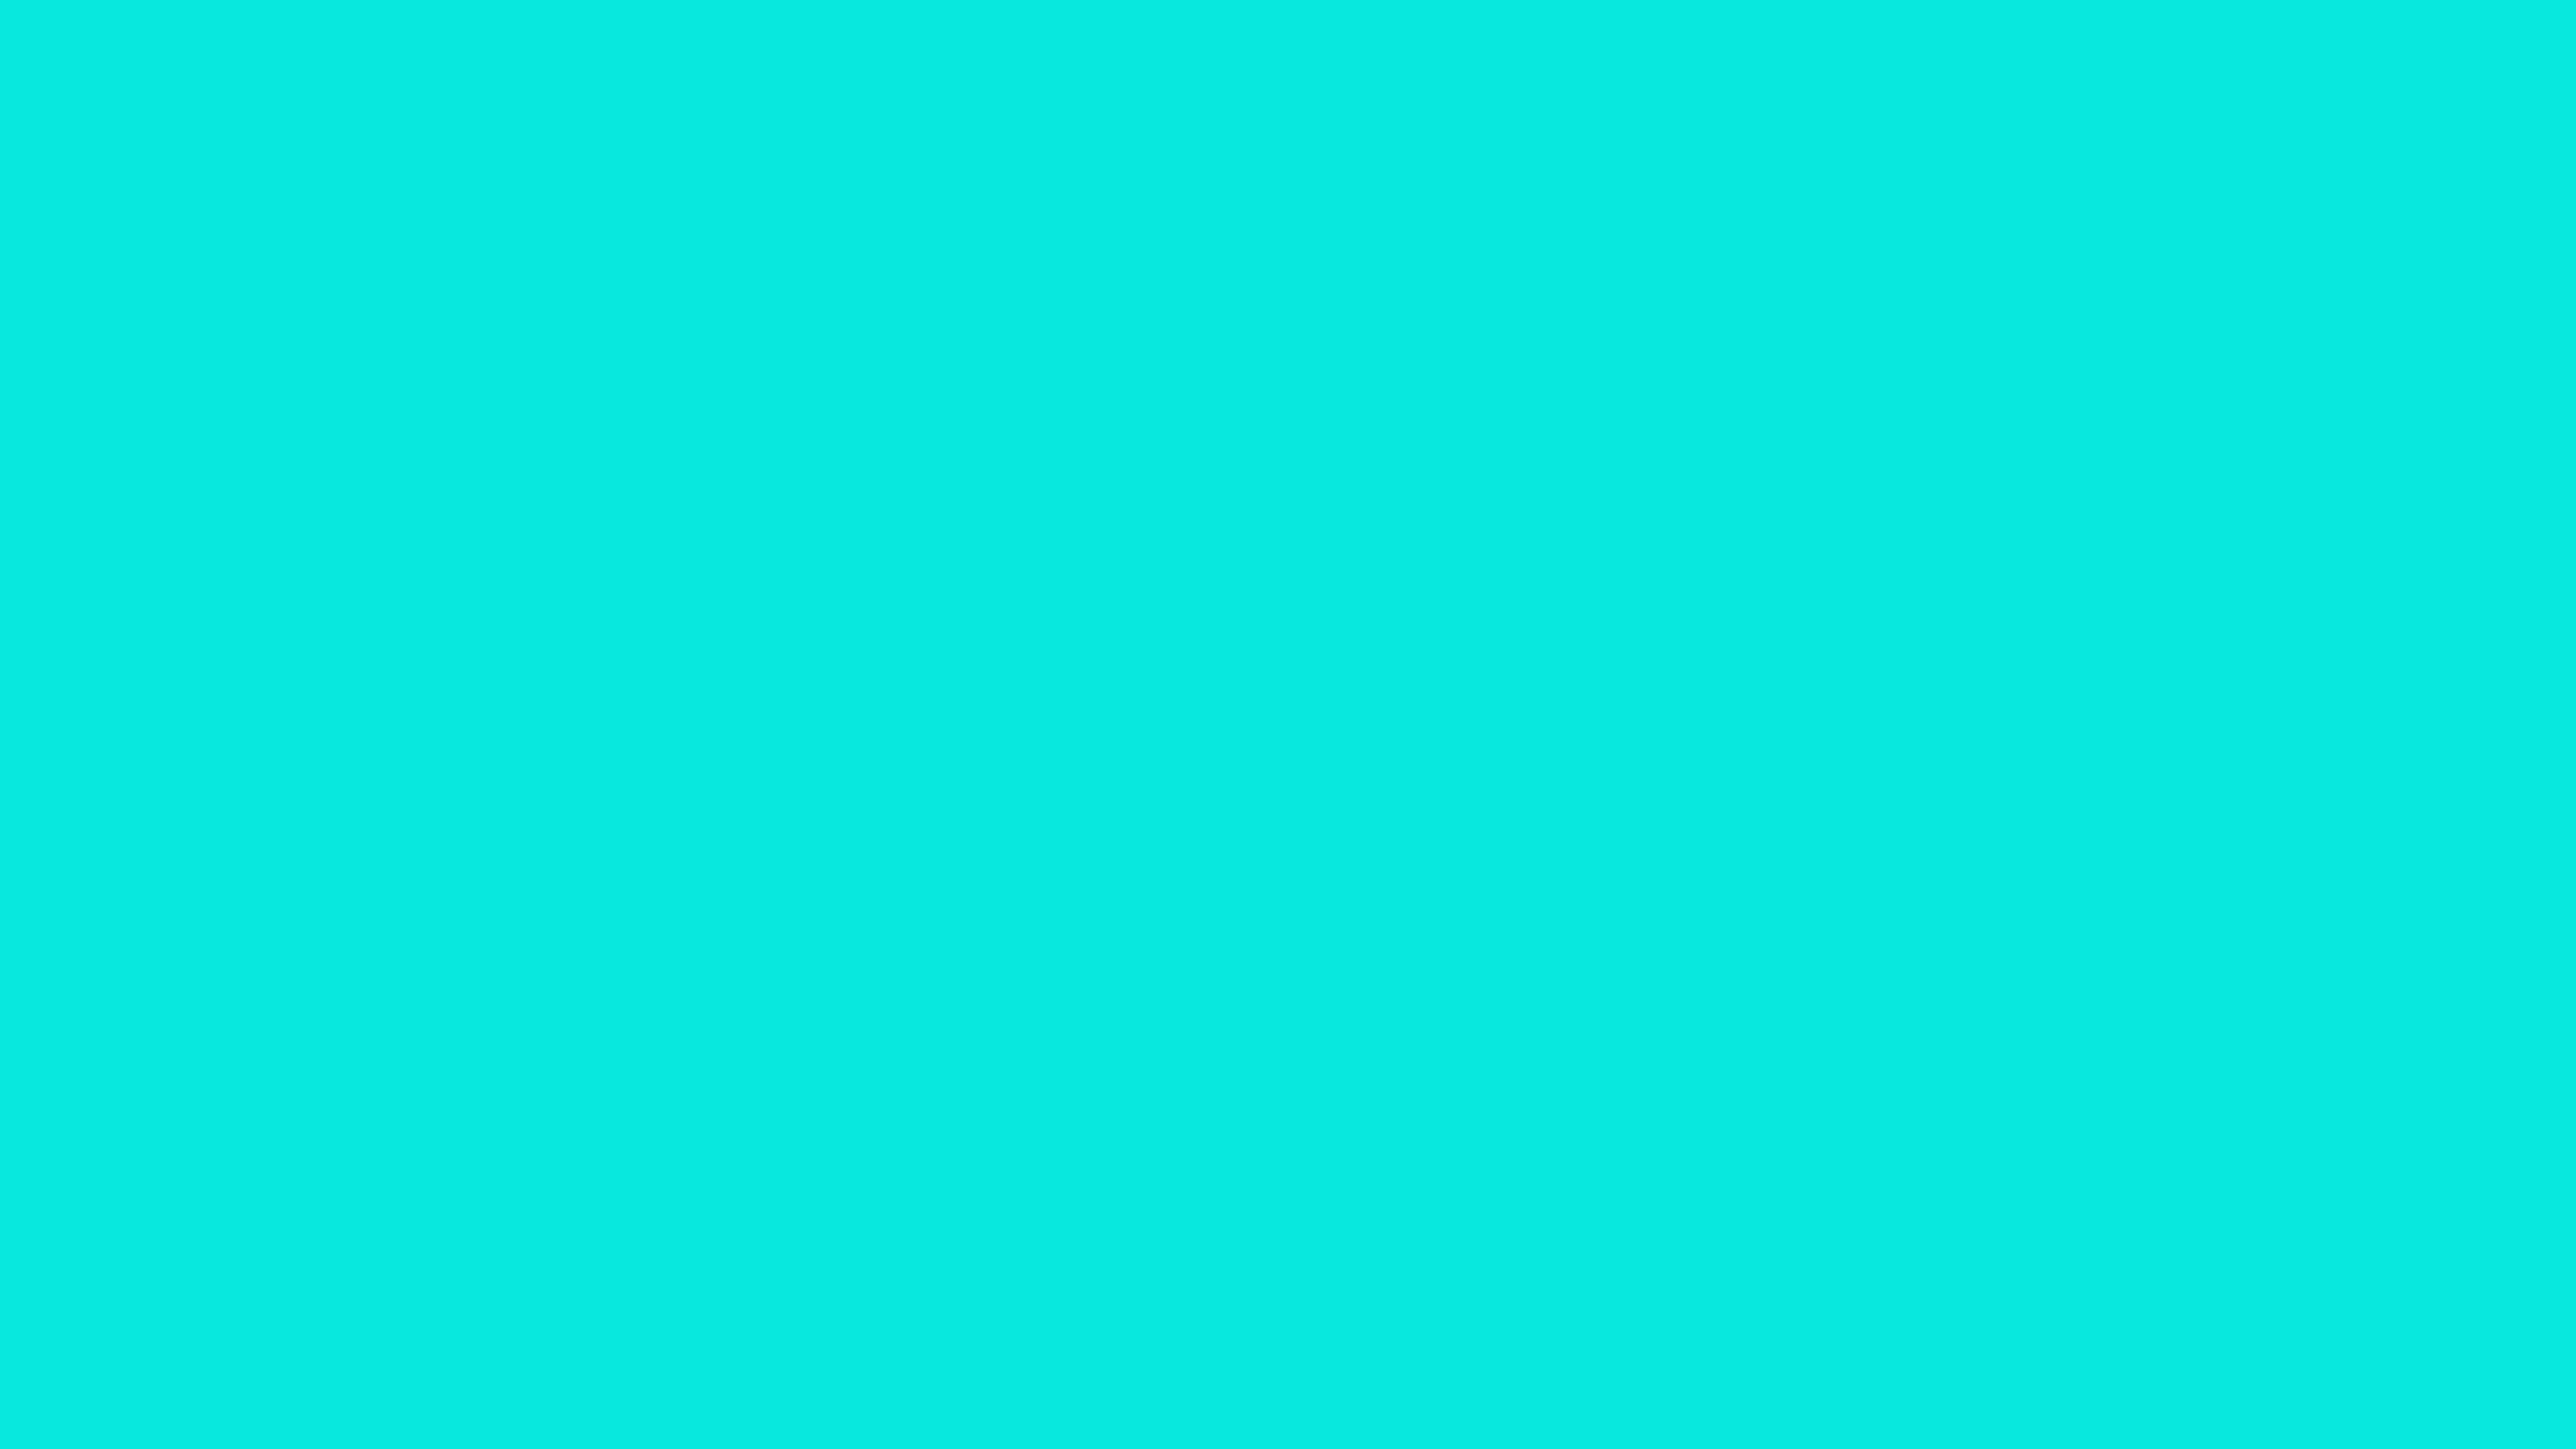 5120x2880 Bright Turquoise Solid Color Background